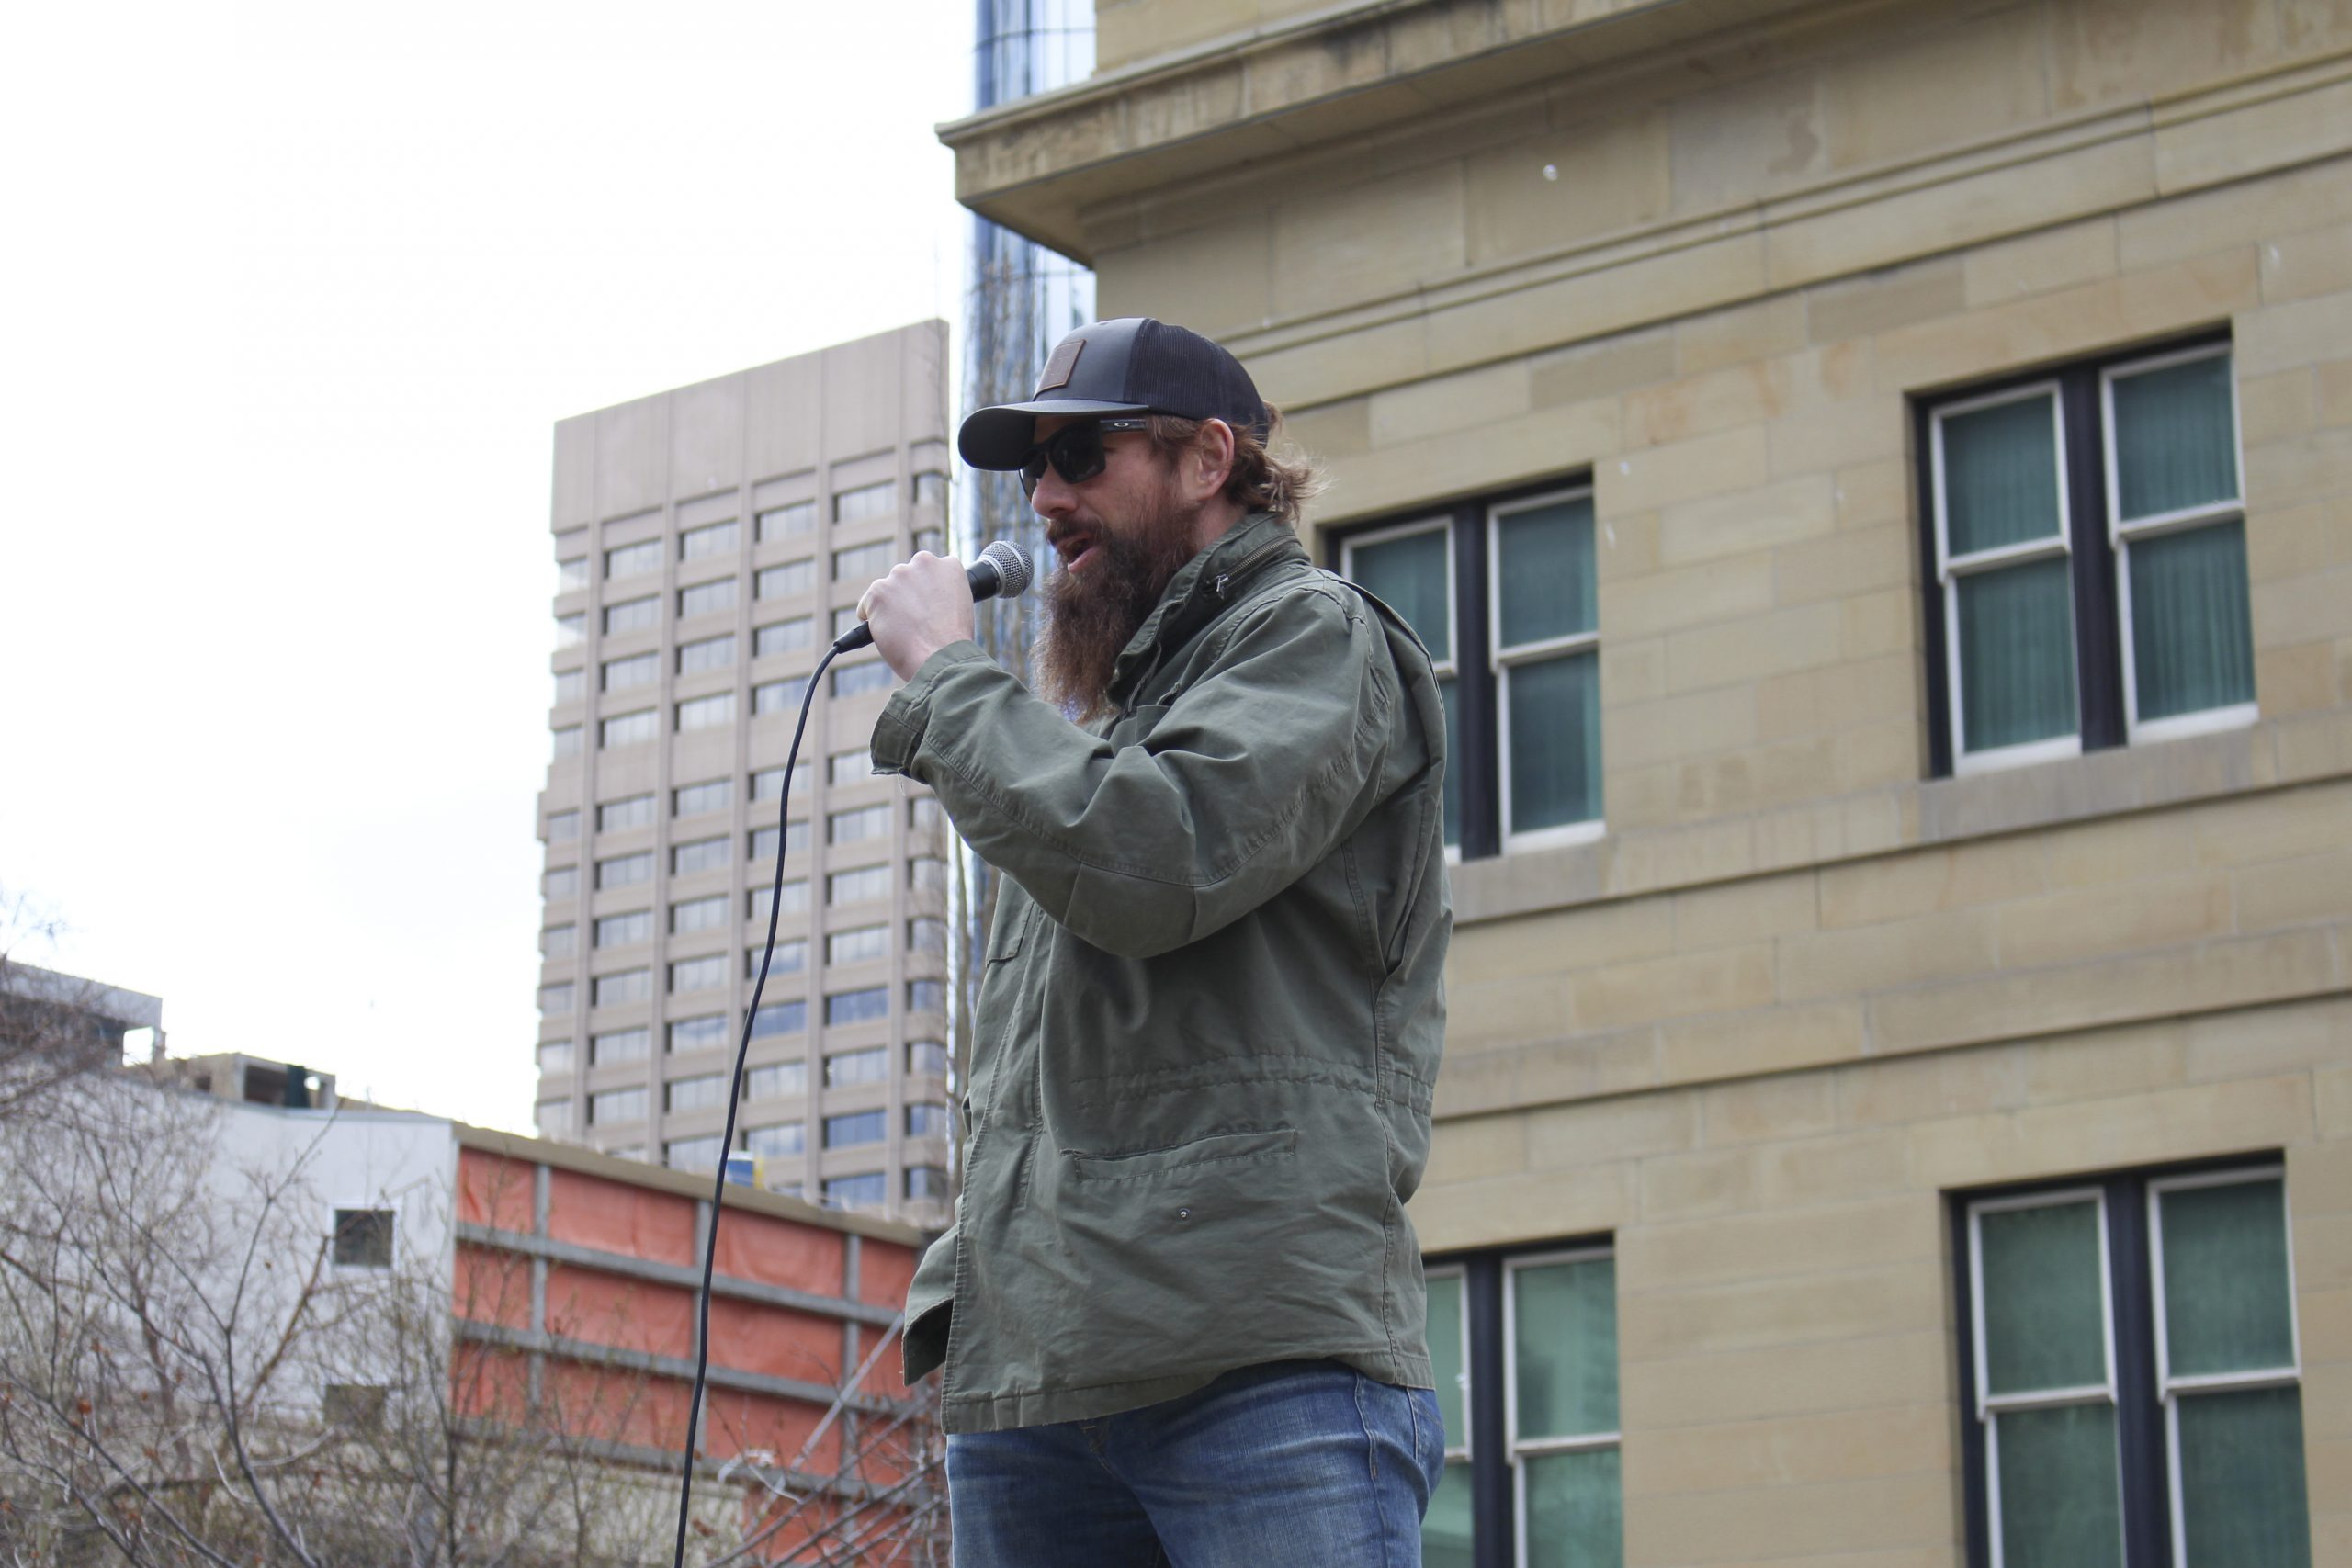 """Travis Cain speaks to a crowd as the emcee for the """"Save Small Business"""" rally at Courthouse Park in downtown Calgary on April 11, 2021. Cain is a volunteer with Freedom4Canada, and he regularly starts the rallies as the opening speaker. Freedom4Canada is also Freedom Corp., a corporation that sponsors different rallies, like the Save Business Rally hosted by Calgary Freedom Central, and these rallies express disdain for mask usage, vaccines, the COVID-19 testing method, and compliance with the government and the enforcement of said closures.(Photo by Alejandro Melgar/SAIT)"""